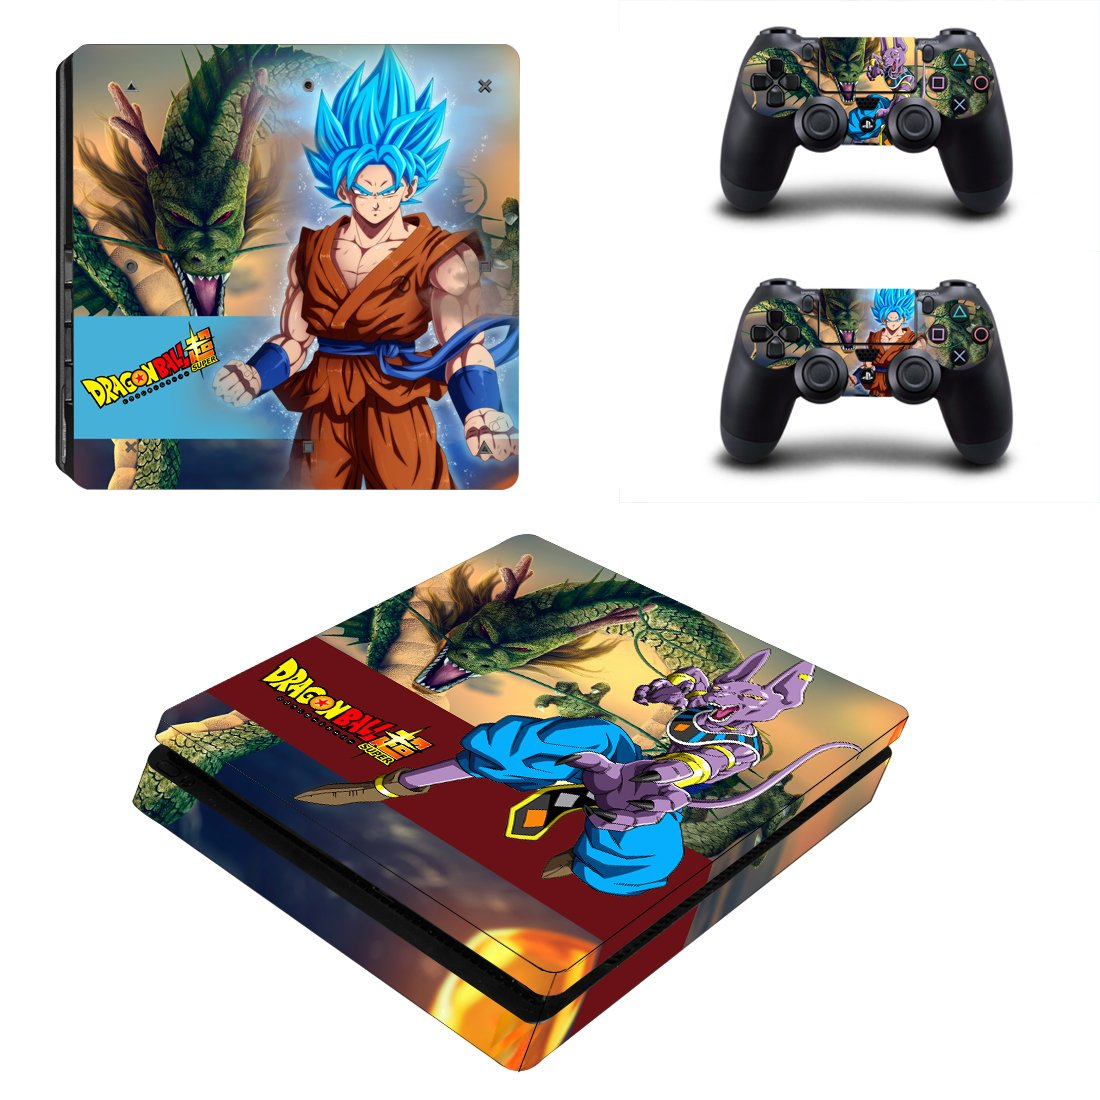 Dragon Ball PS4 Slim Skin Sticker Wrap